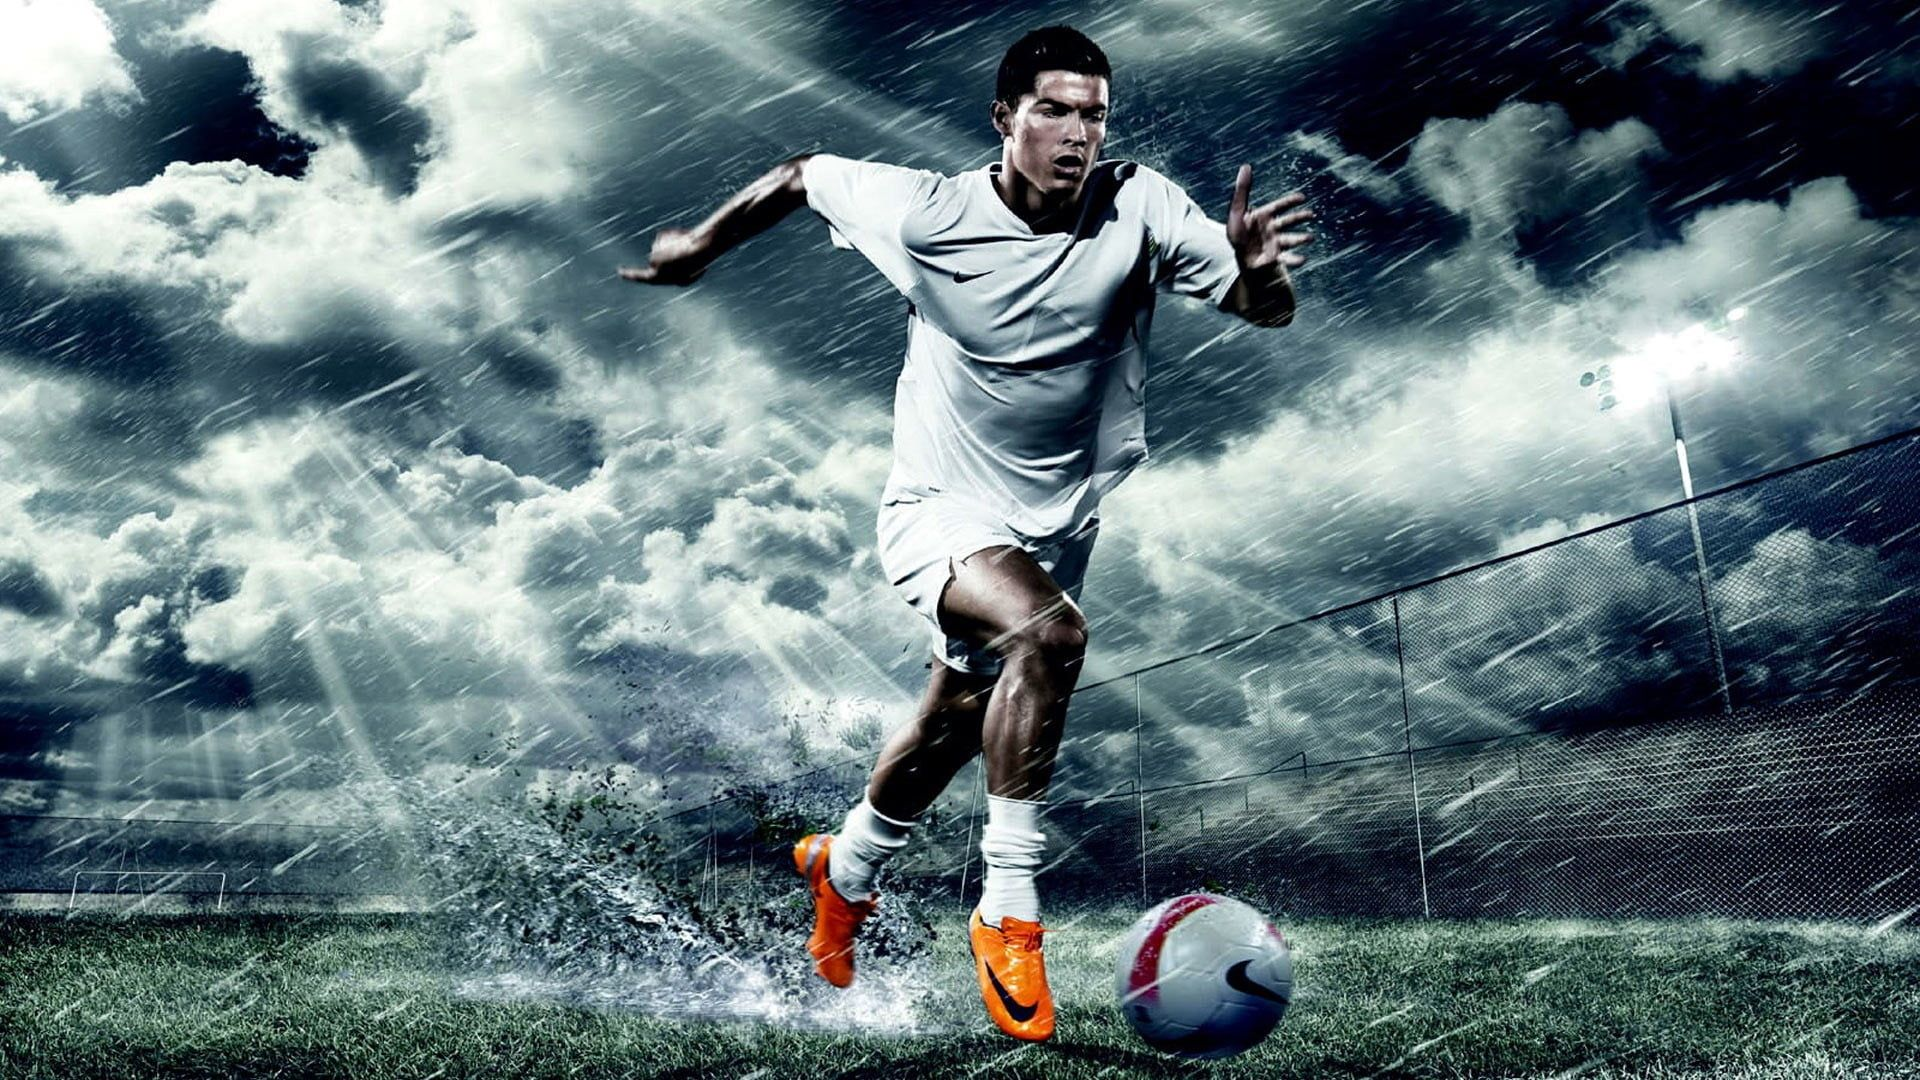 Hd Wallpapers 1080p Football Football Images Football Wallpaper Soccer